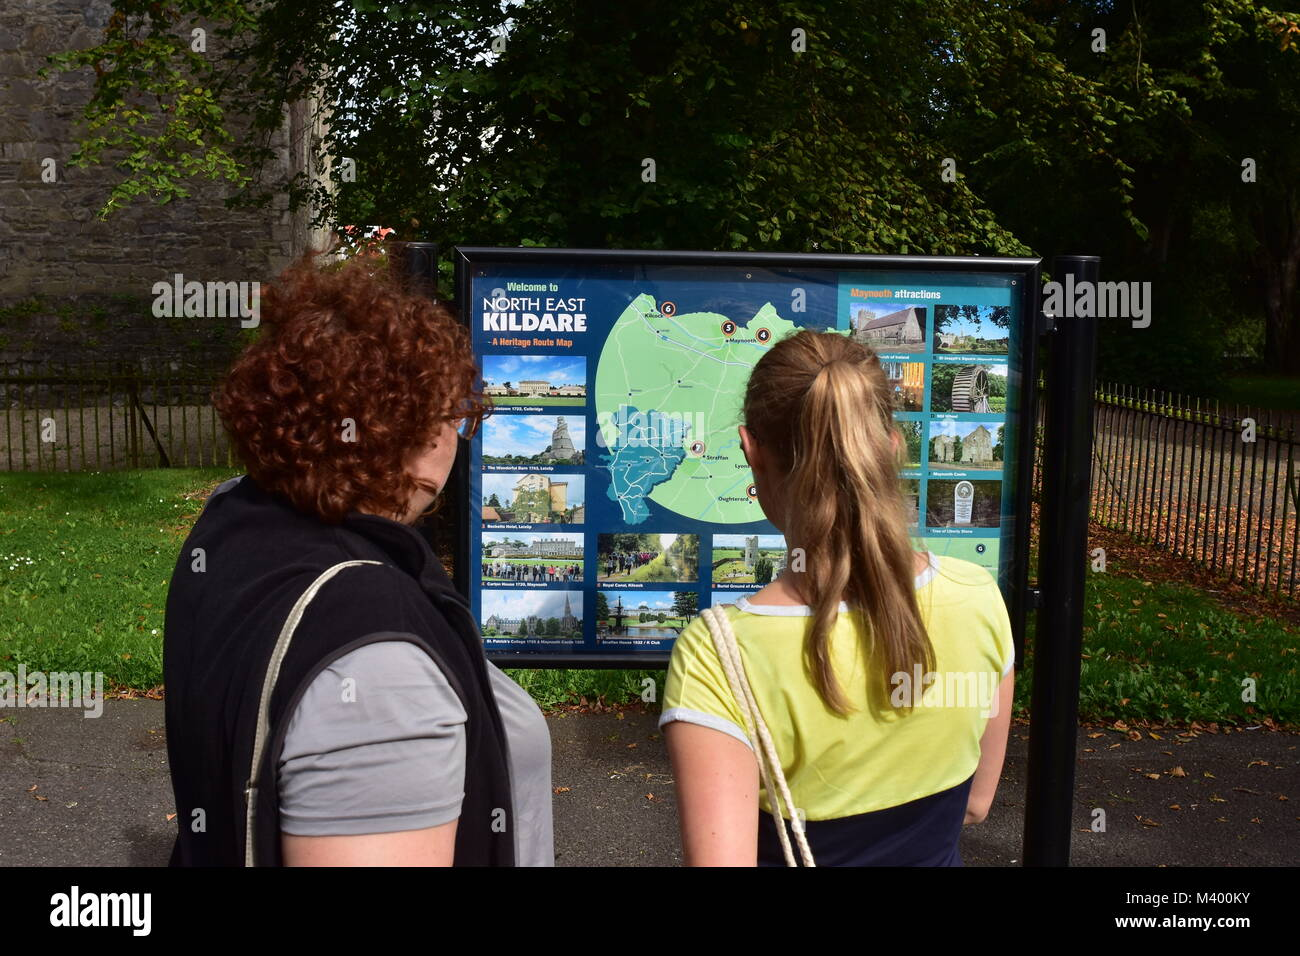 Tourists at heritage route map of North East Kildare in Ireland. - Stock Image